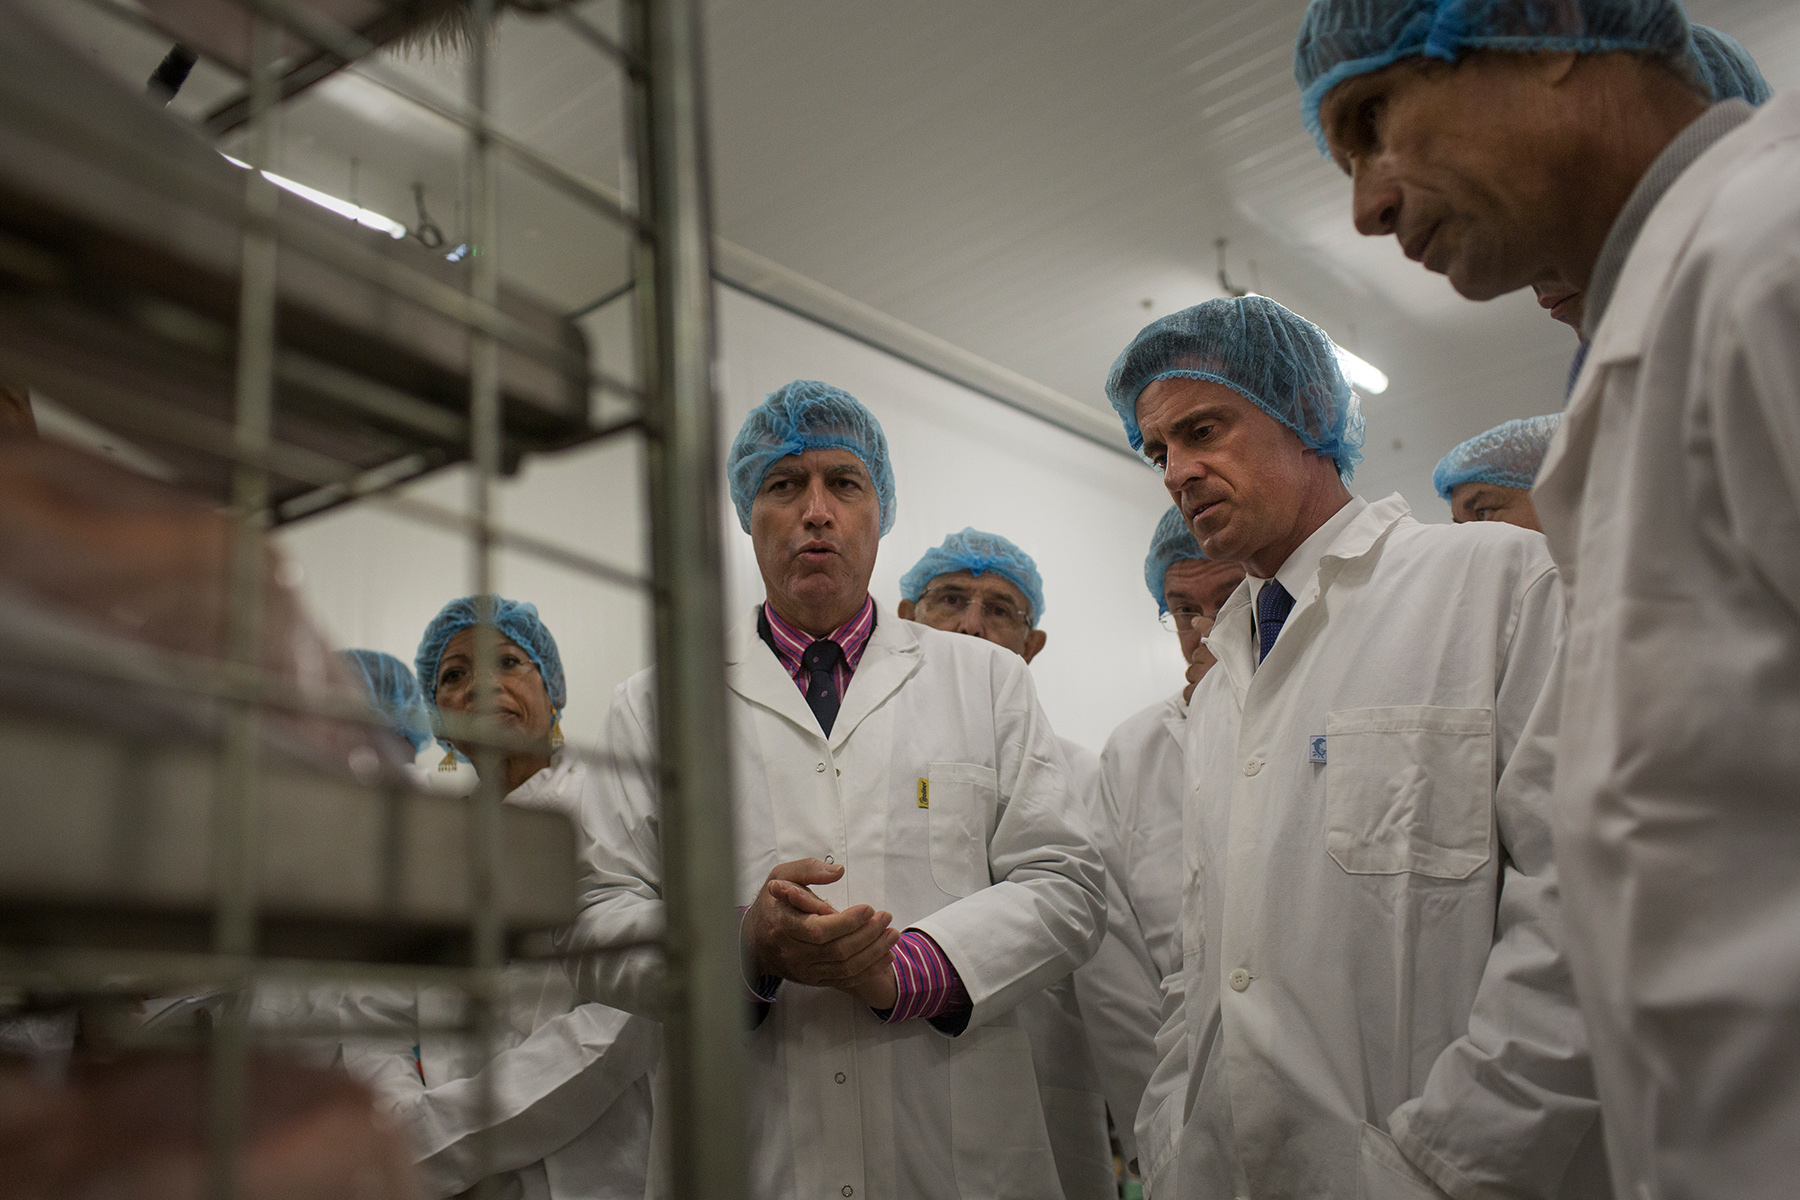 French First Minister Manuel Valls inaugurates the poultry slaughterhouse Crete d'Or in l'Etang Sale, Reunion Island, France. Thursday, June 11, 2015